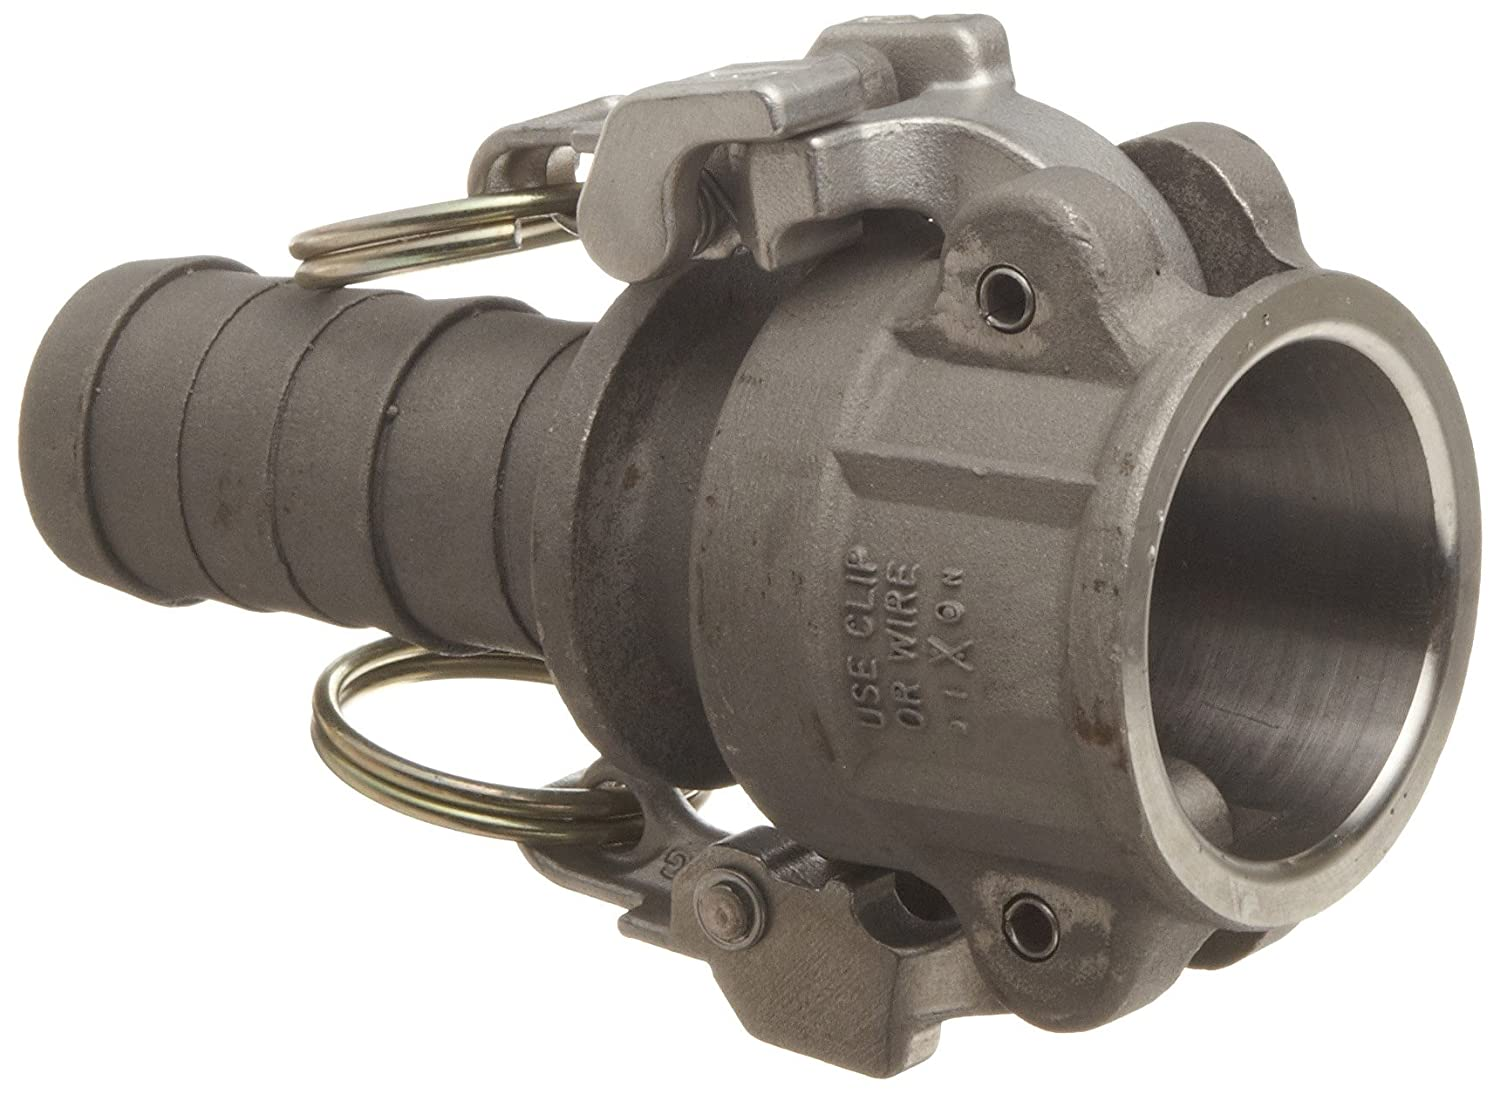 Dixon 50-E-SS Stainless Steel 316 Boss-Lock Type E Cam and Groove Hose Fitting 1//2 Plug x 1//2 Hose ID Barbed 1//2 Plug x 1//2 Hose ID Barbed Dixon Valve /& Coupling